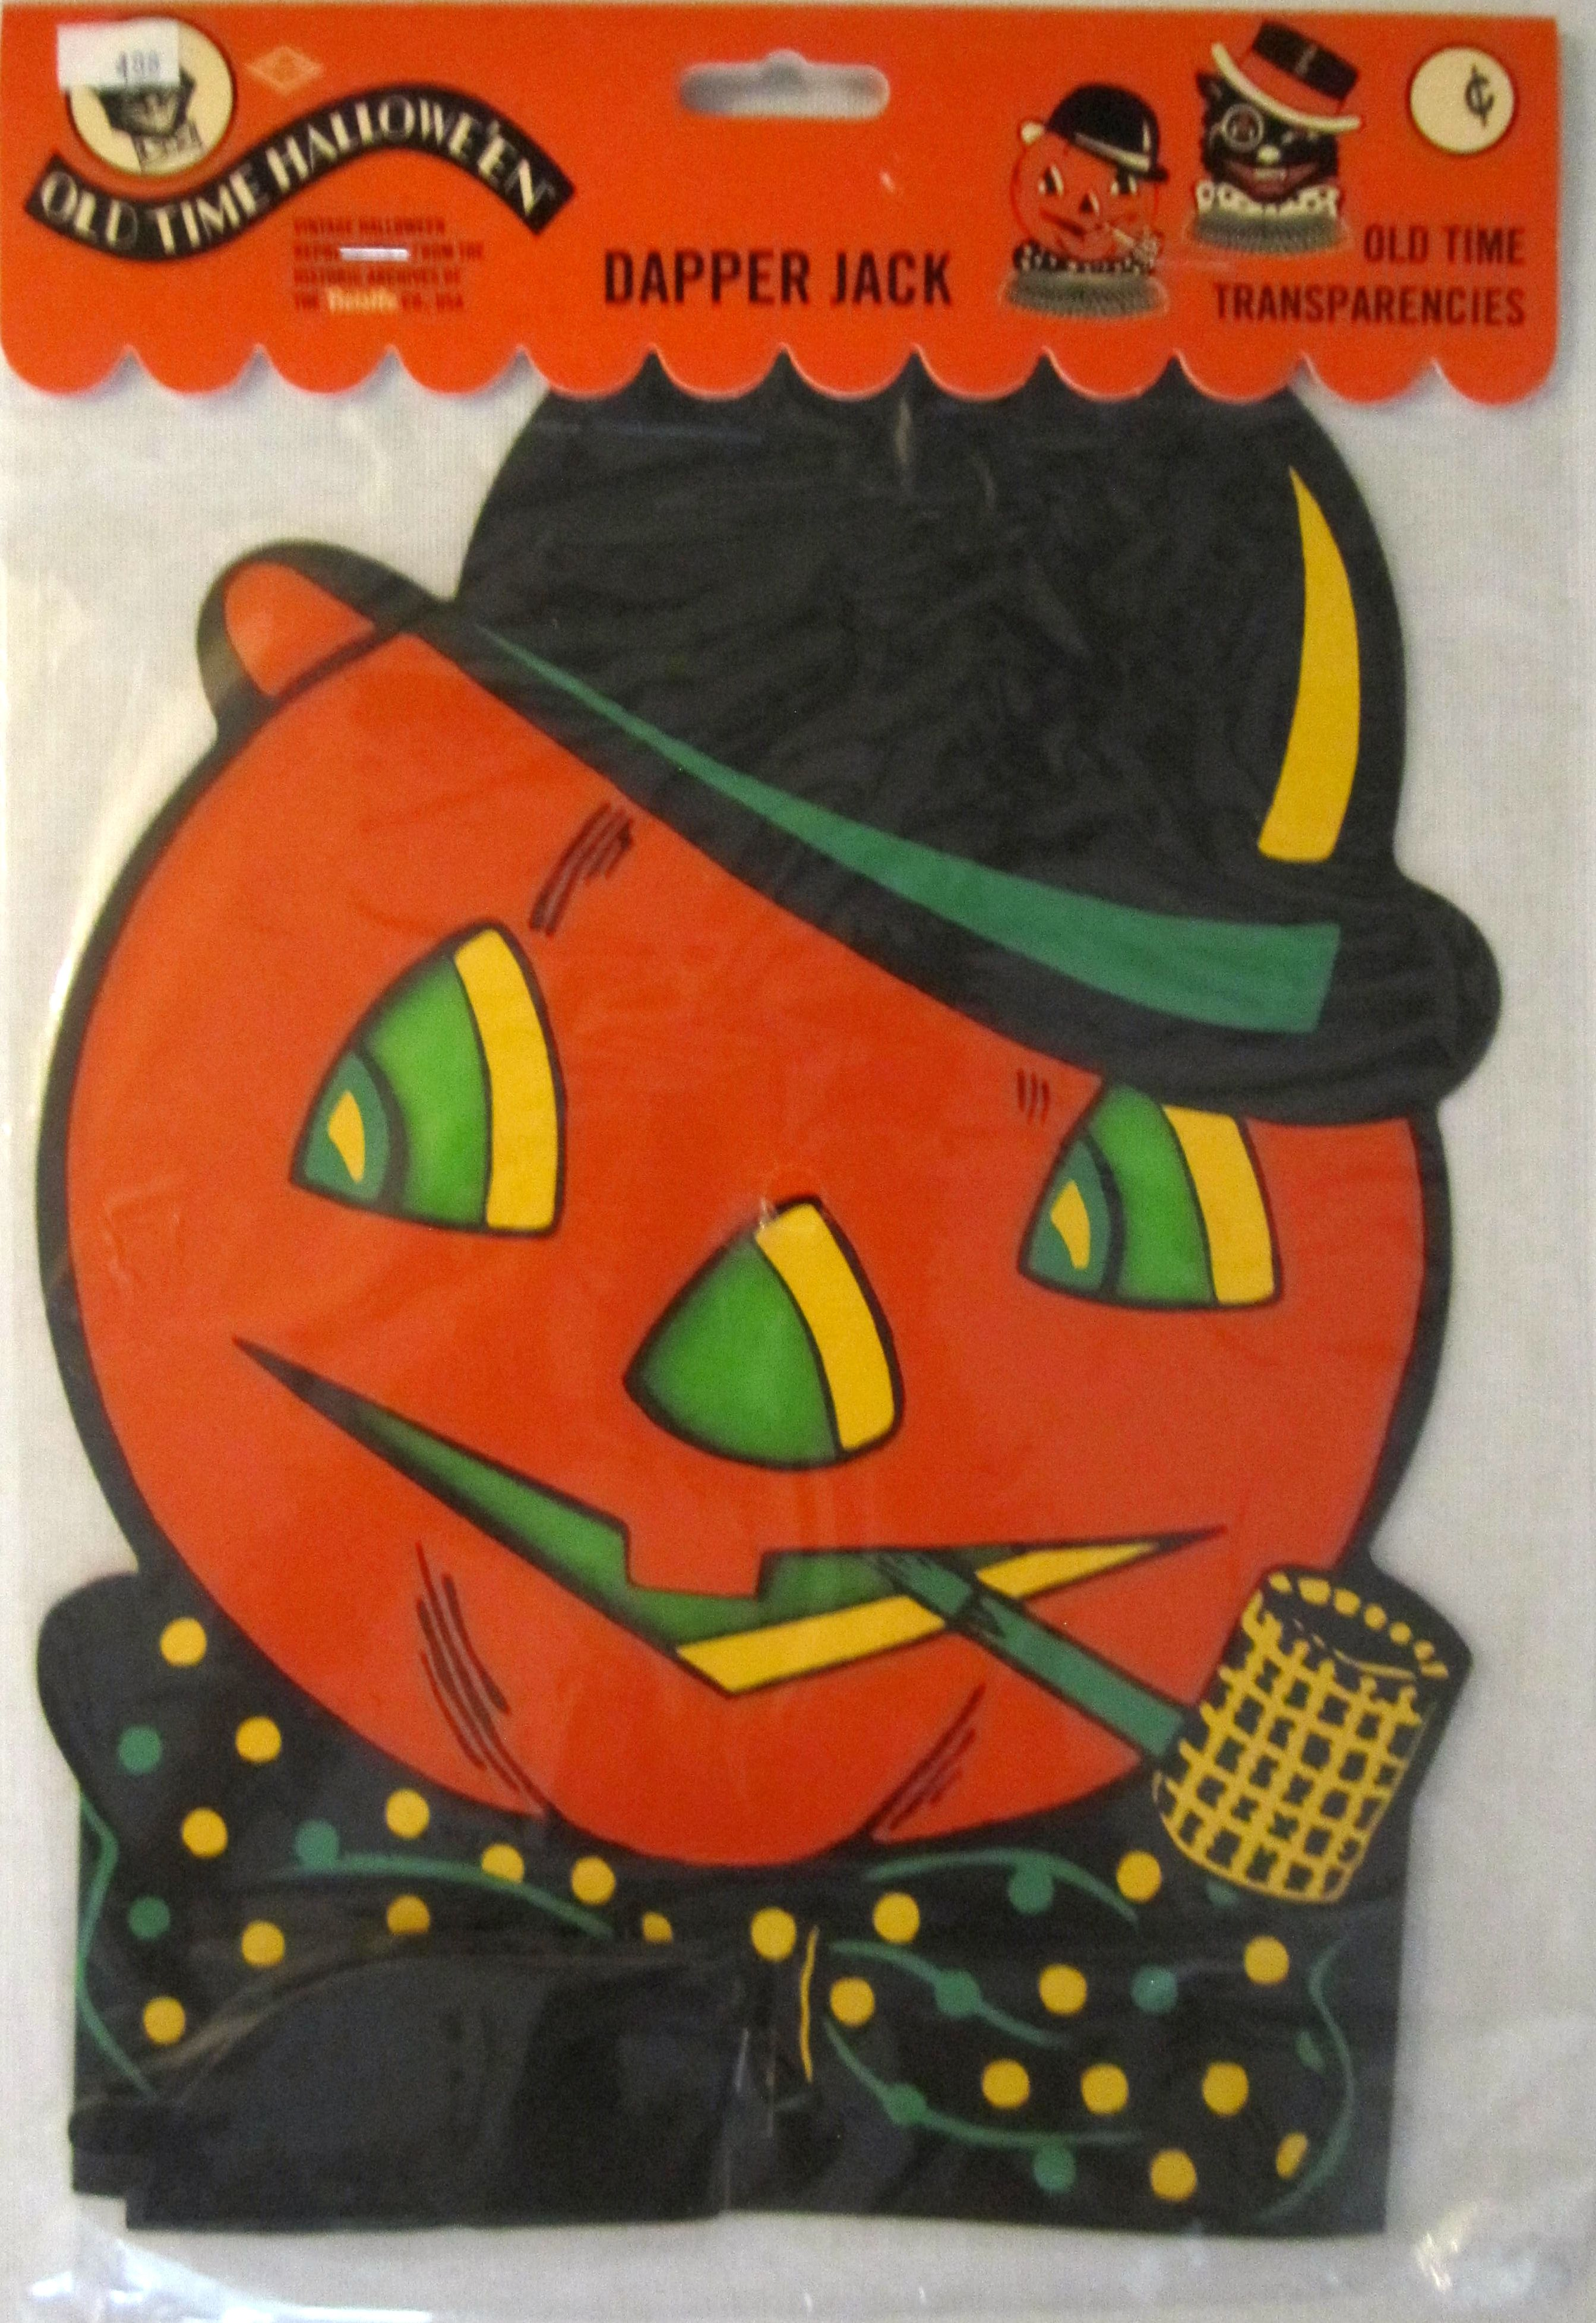 vintage halloween decorations reproduction vintage beistle early 2000s dapper jack